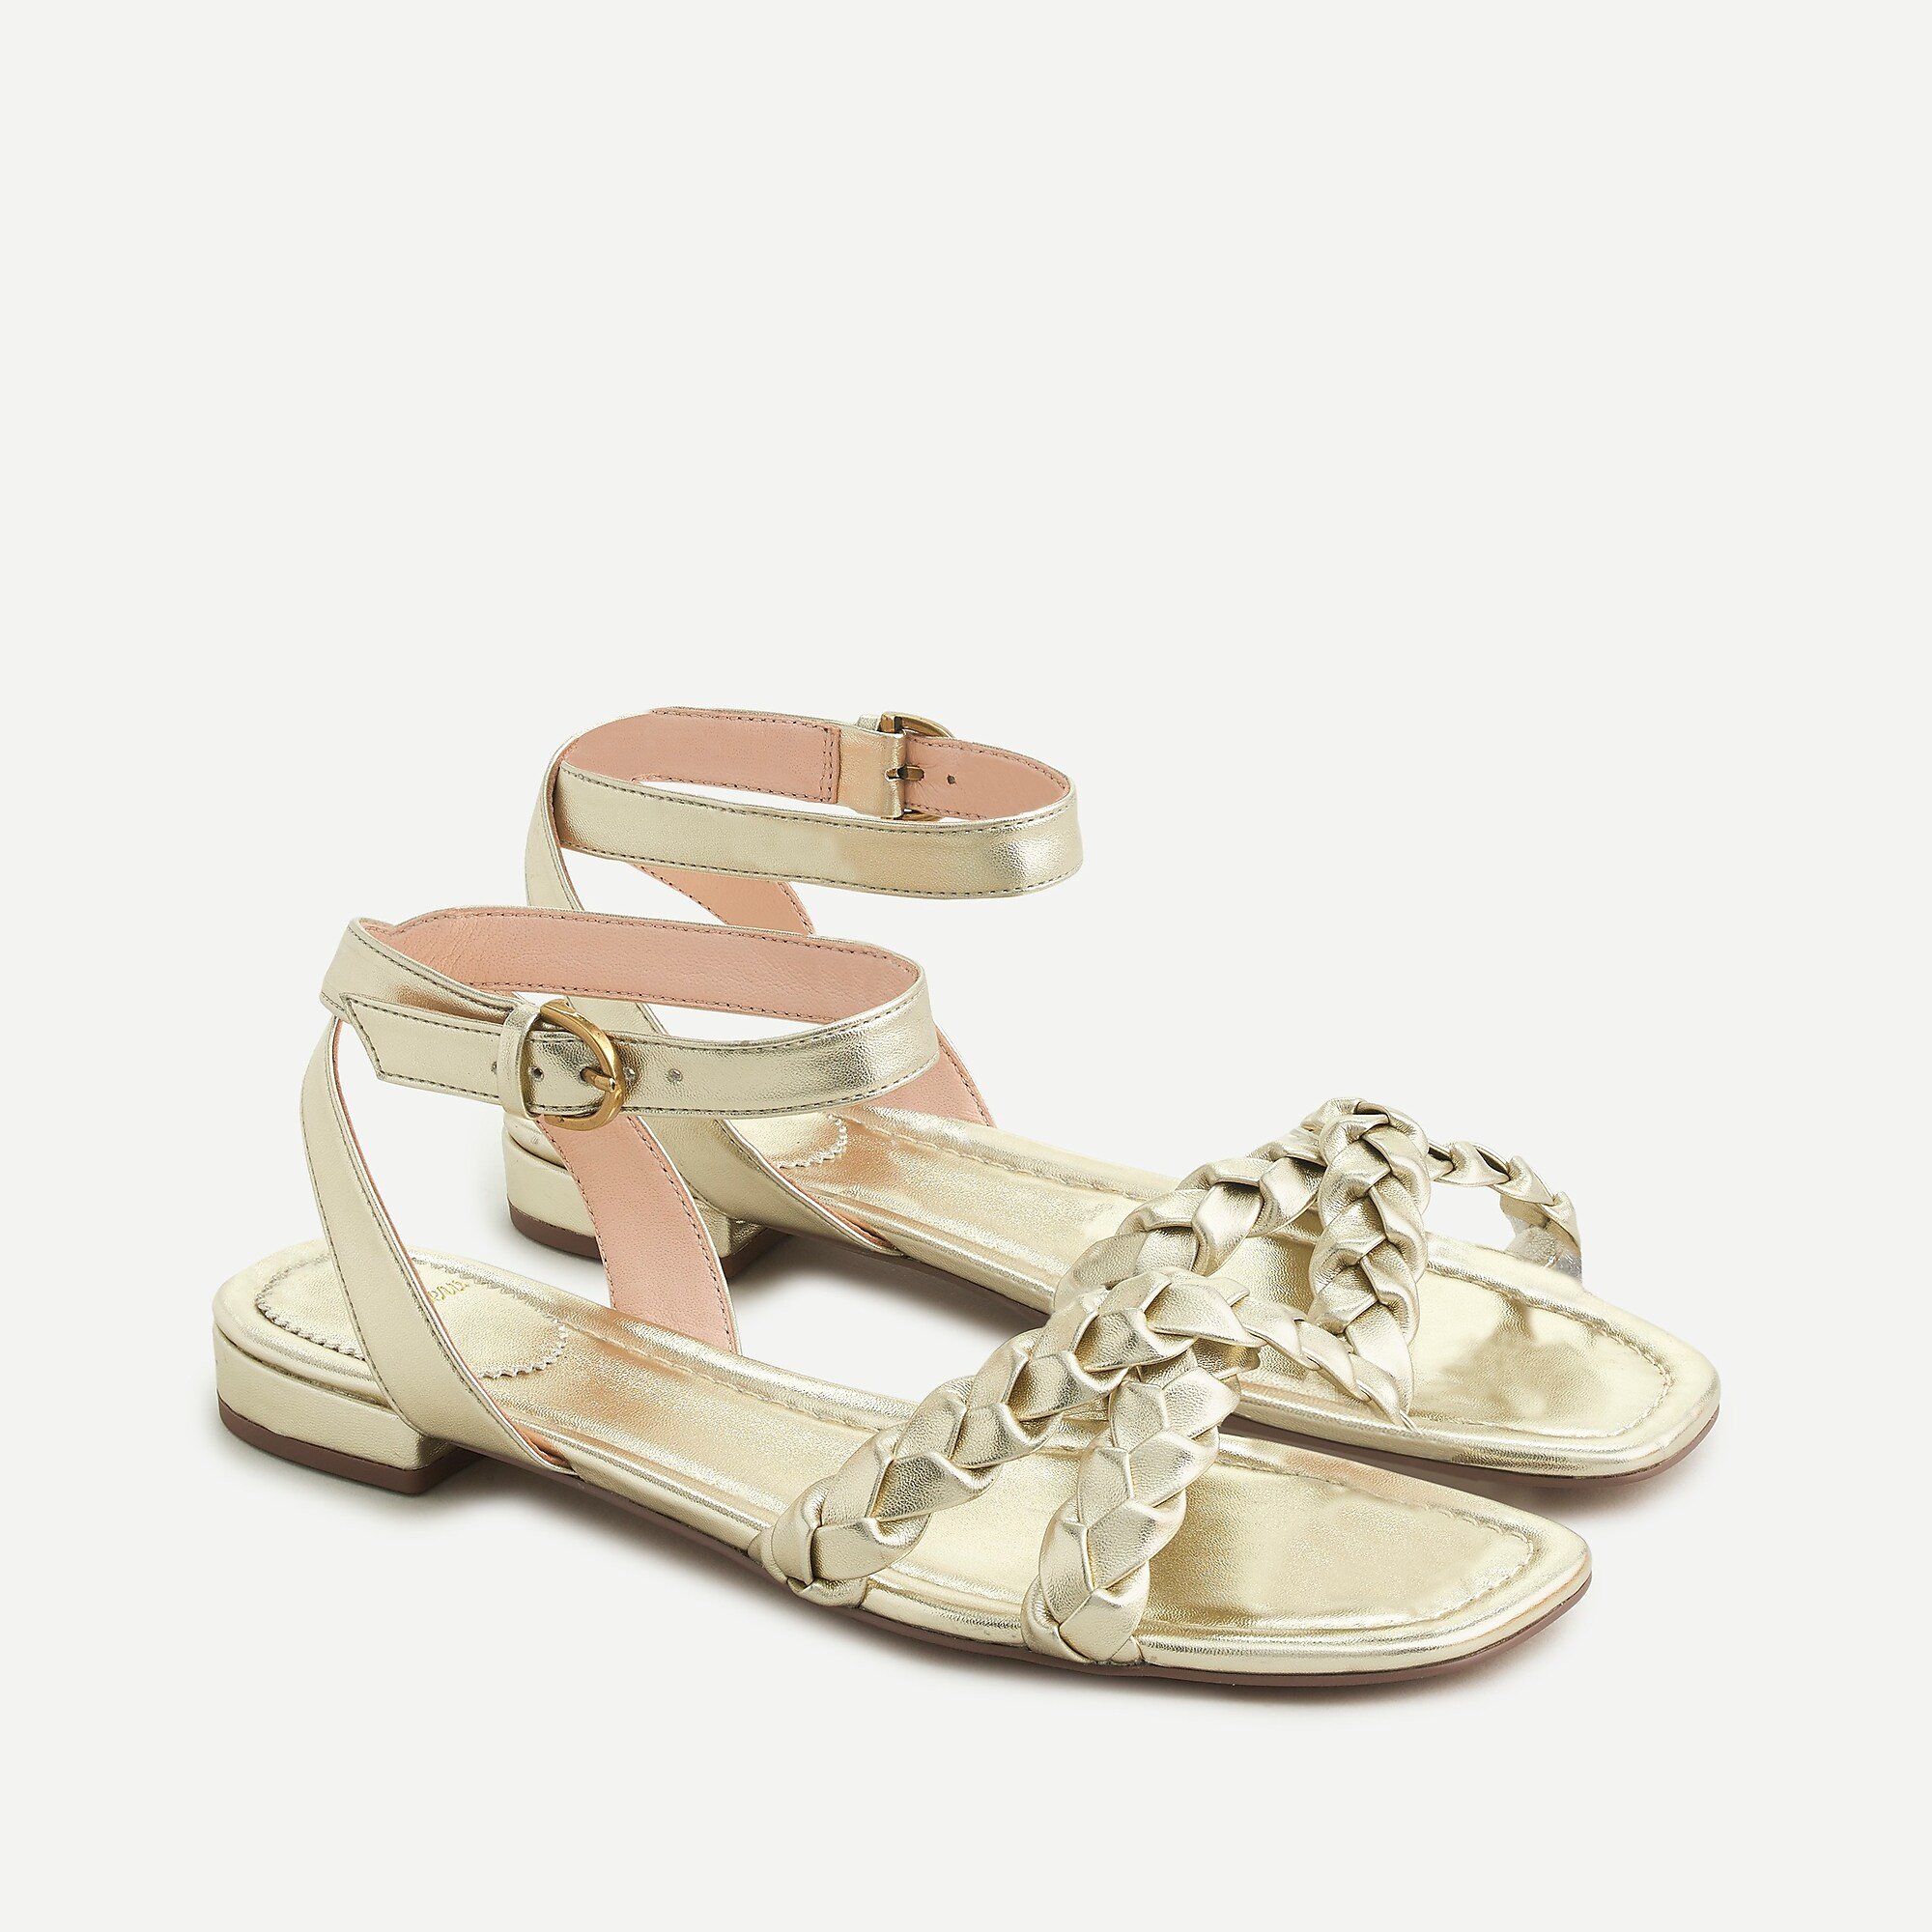 Abbie Braided Cross-Strap Sandals in Metallic Leather